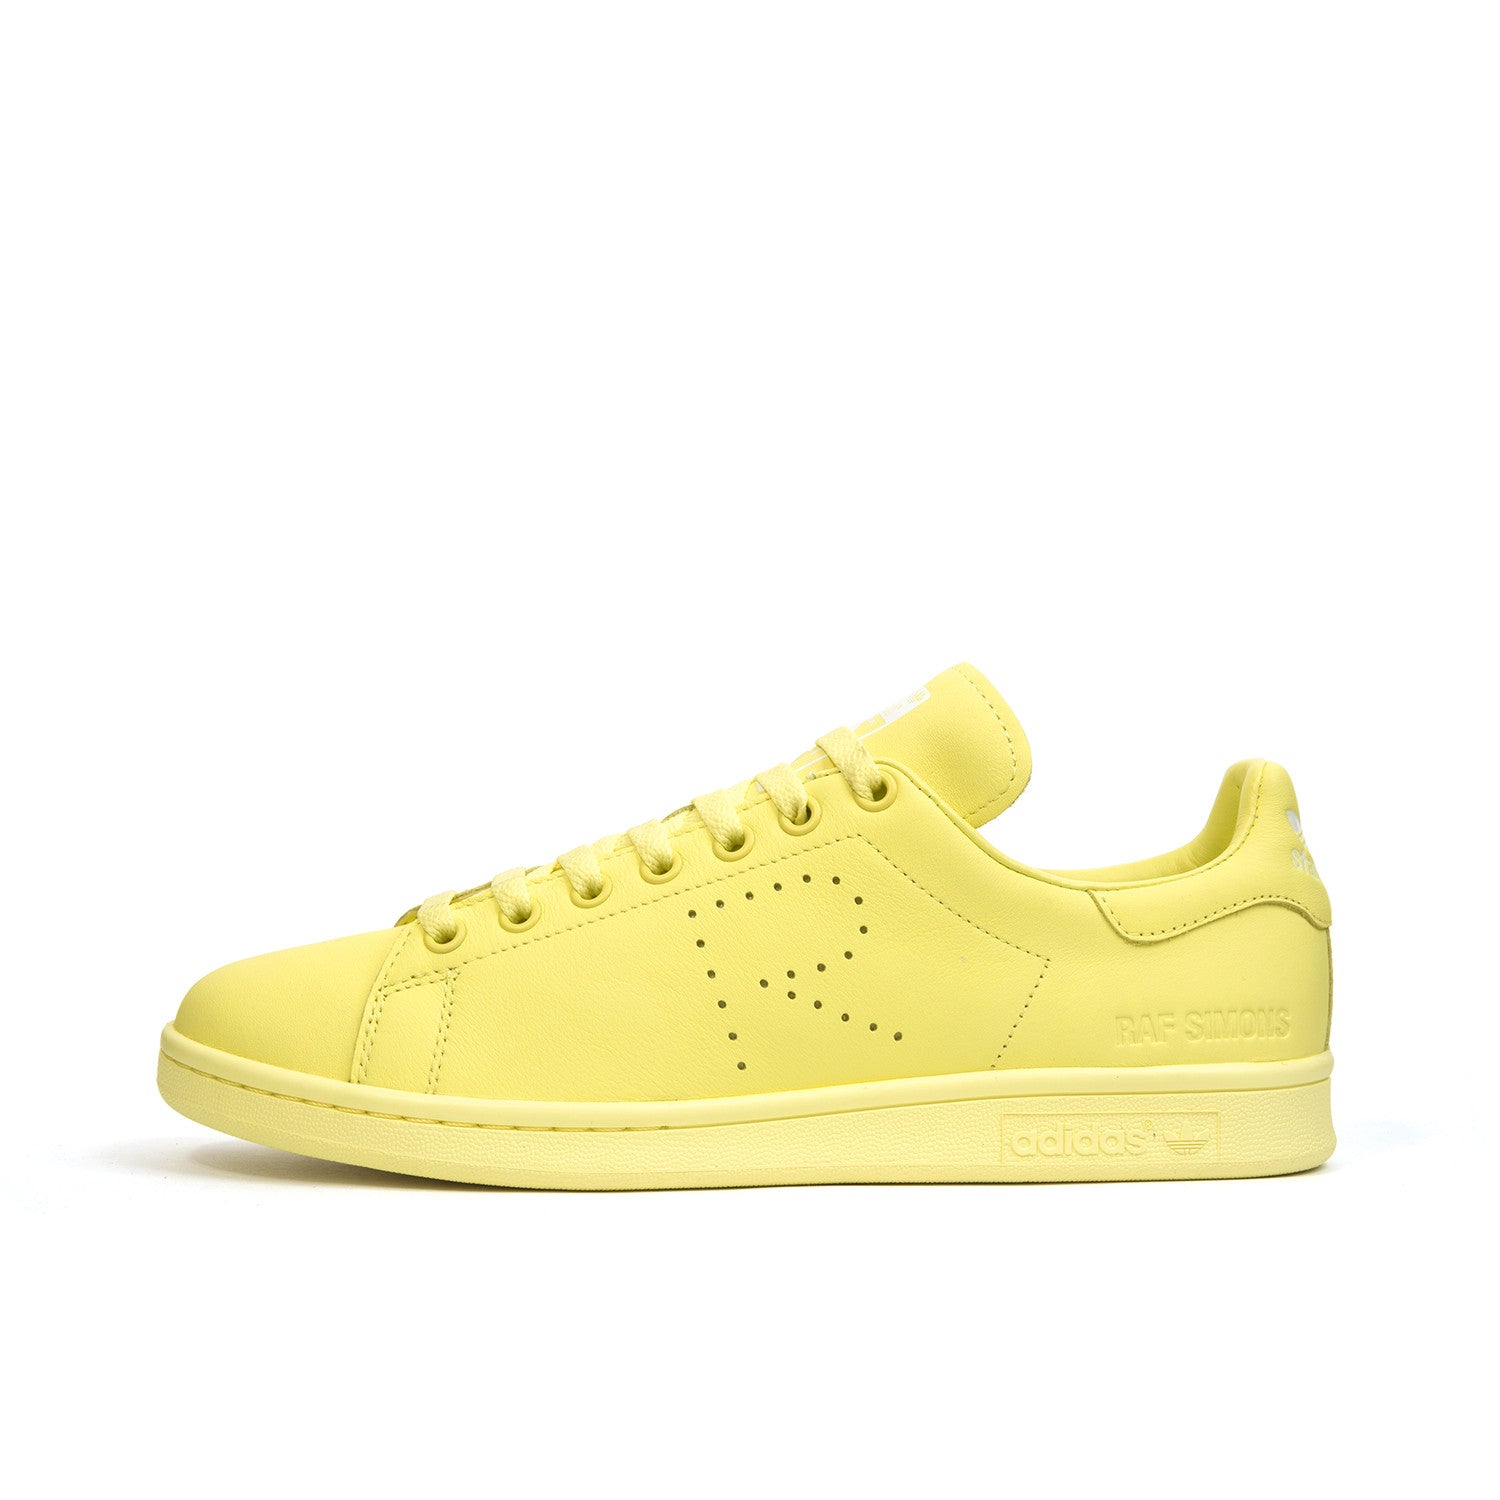 best website 0128b 3b996 adidas x Raf Simons Stan Smith Blush Yellow